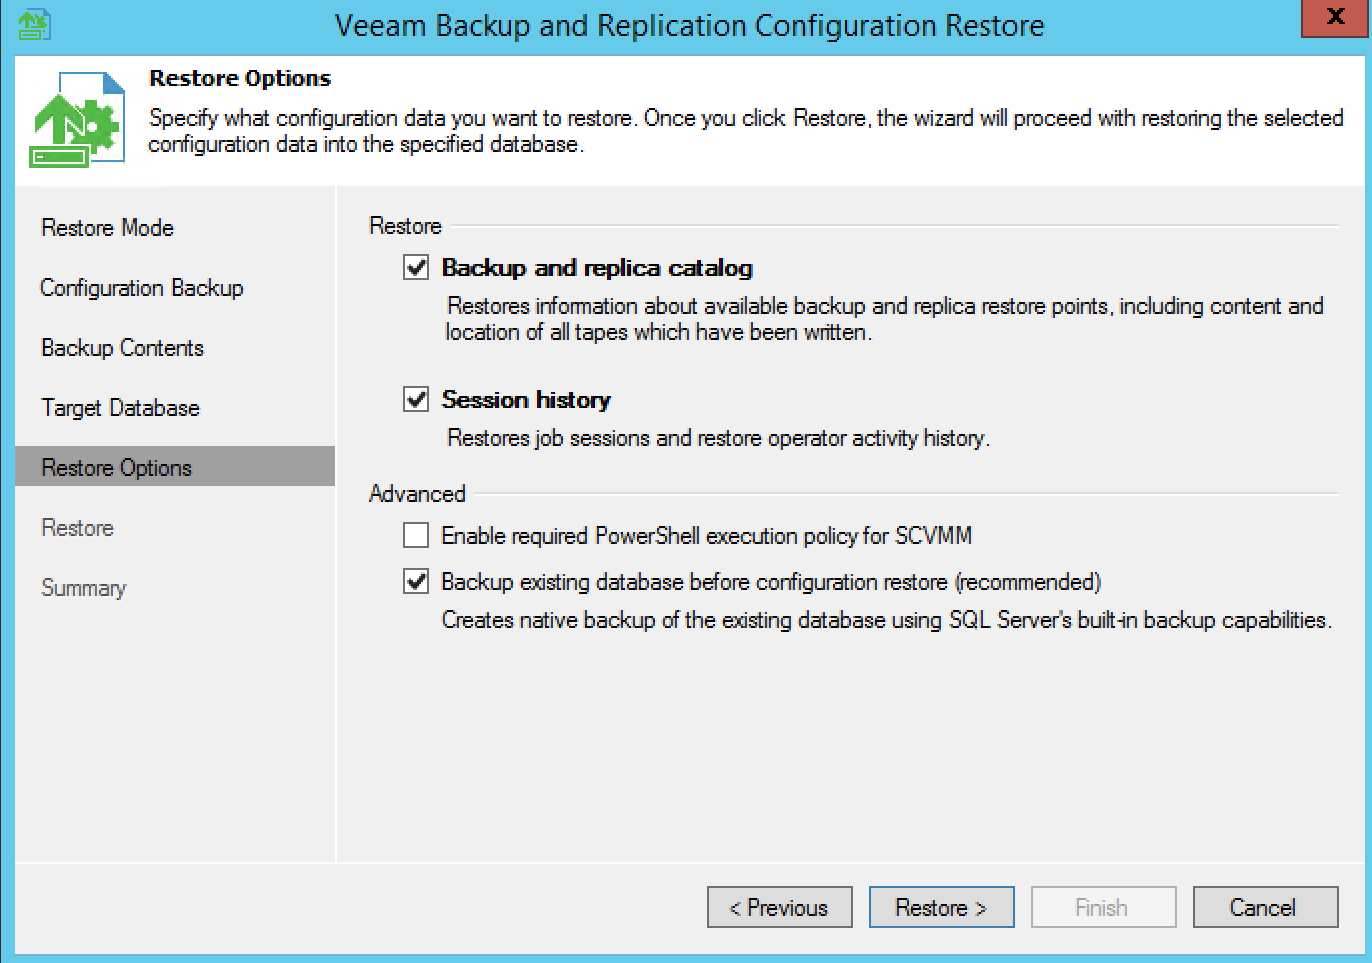 Migrate Veeam Backup and Replication 9 Server to new Server